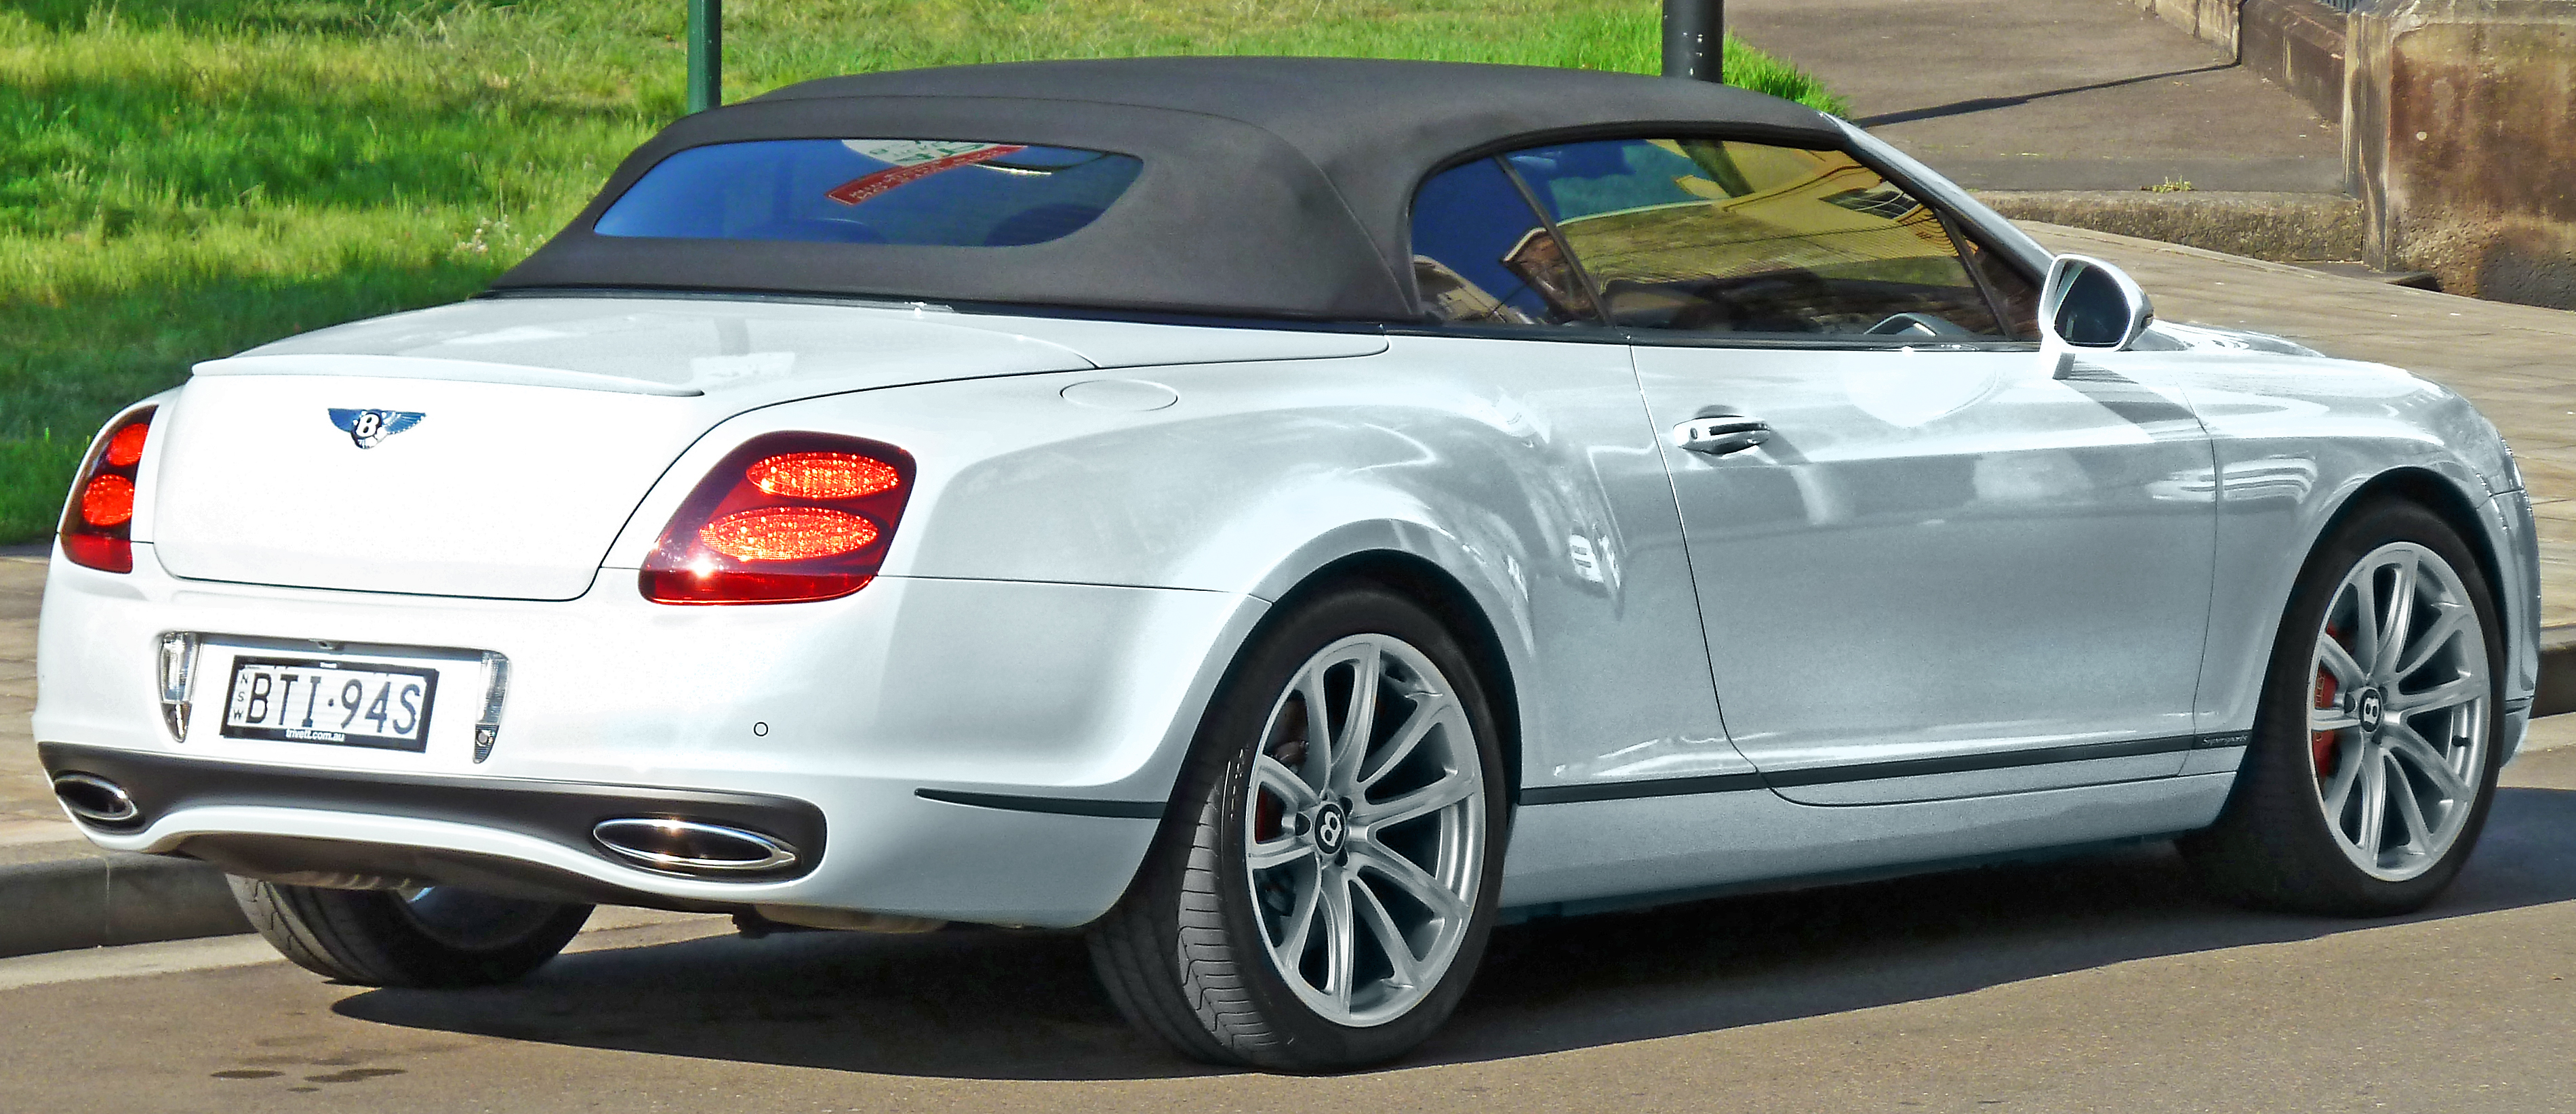 hd photos supersports bentley continental convertible wallpaper